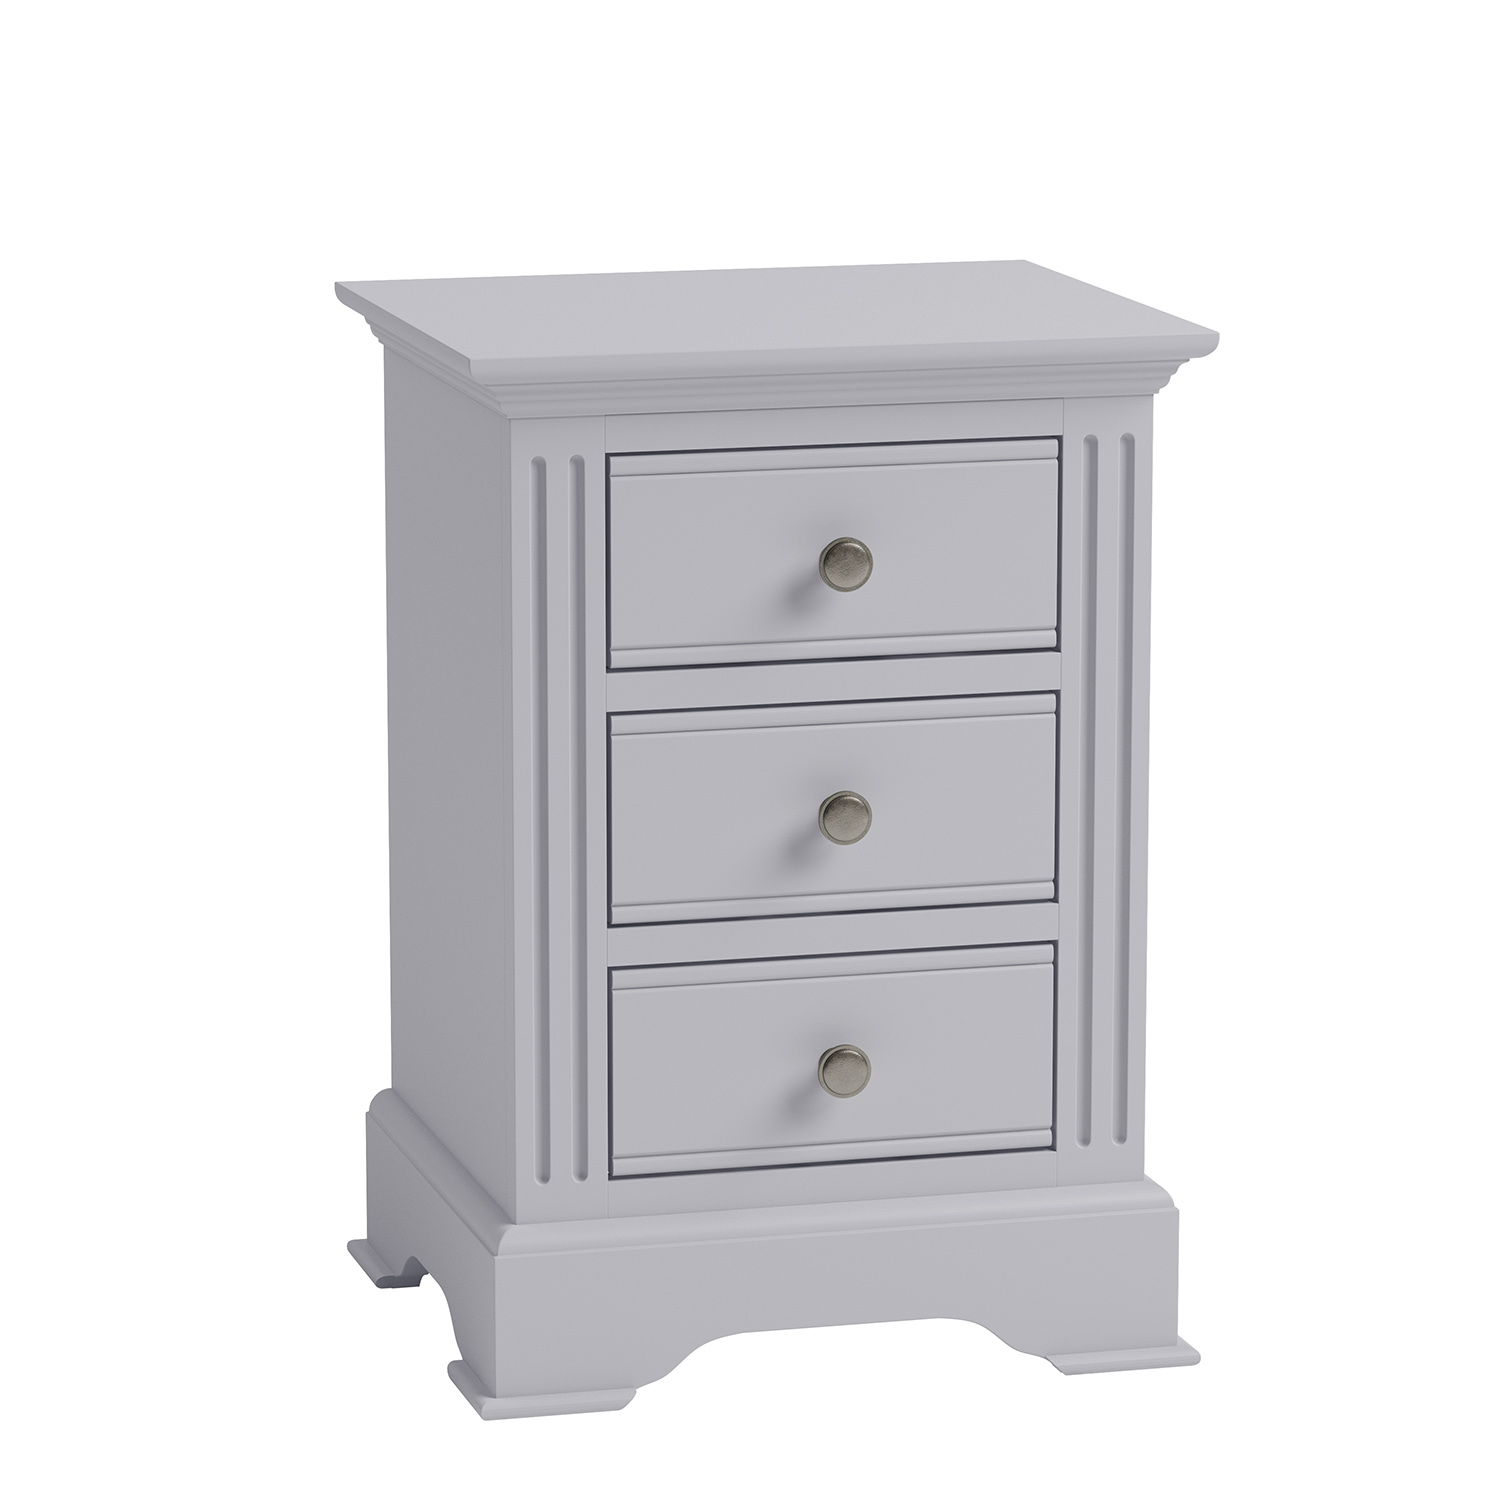 Whitby Grey Large Bedside